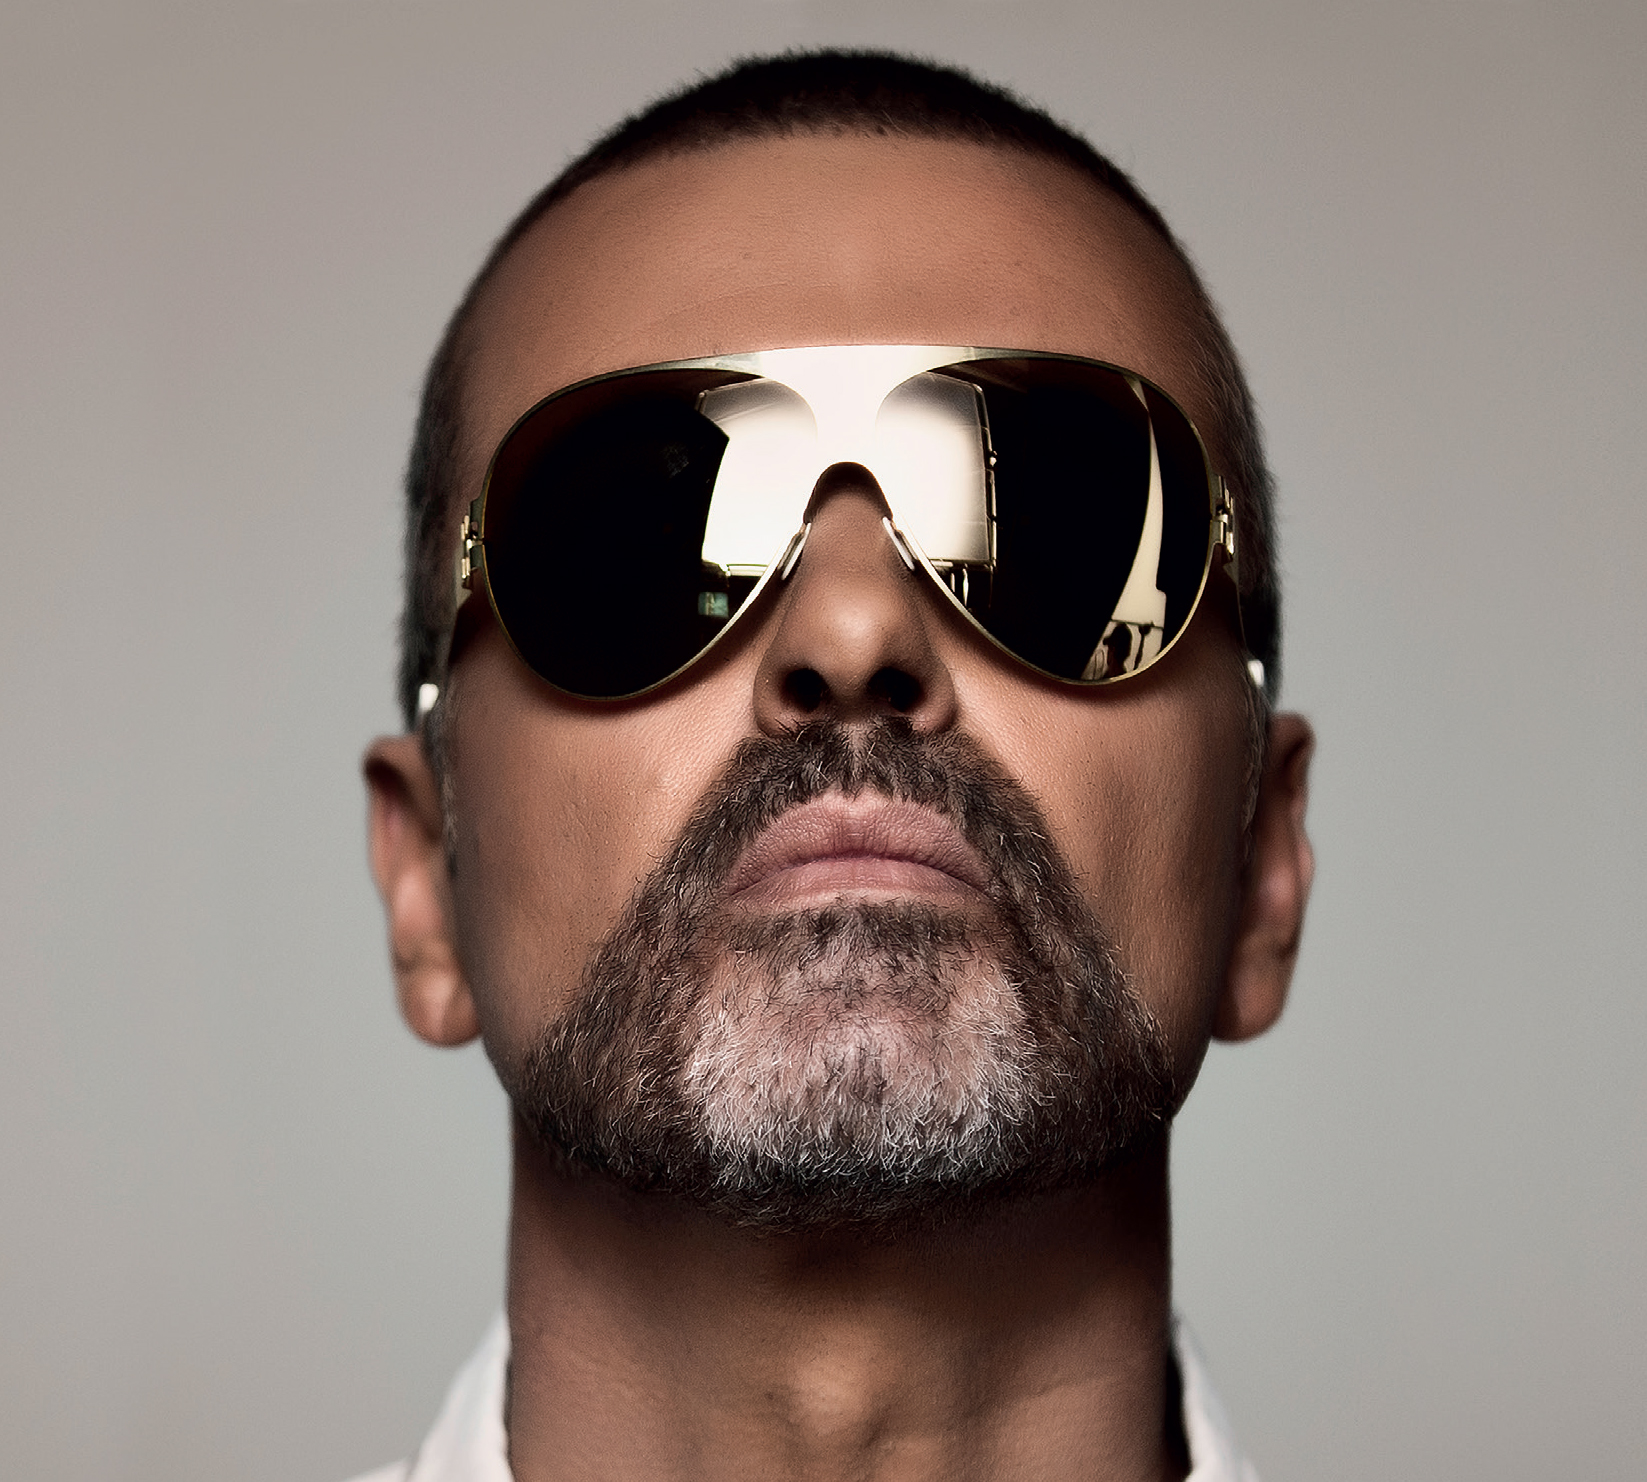 New George Michael single 'Fantasy' premiered today